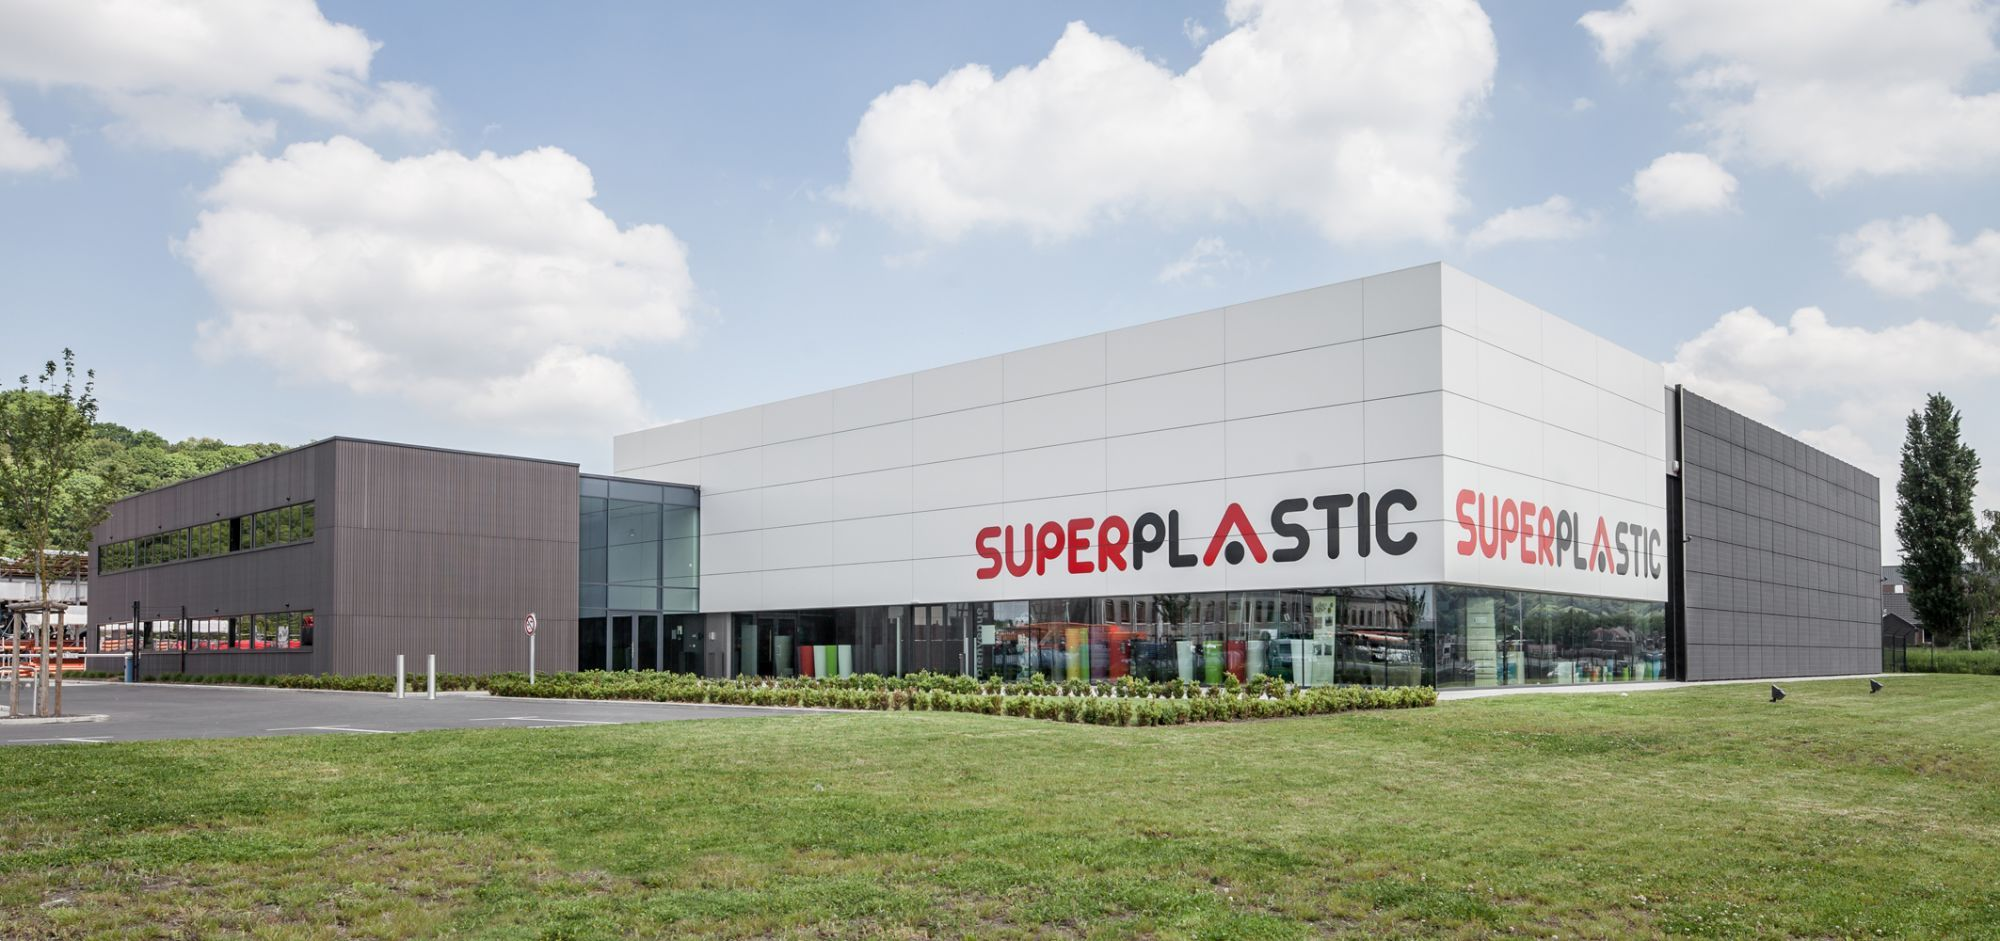 superplastic-1